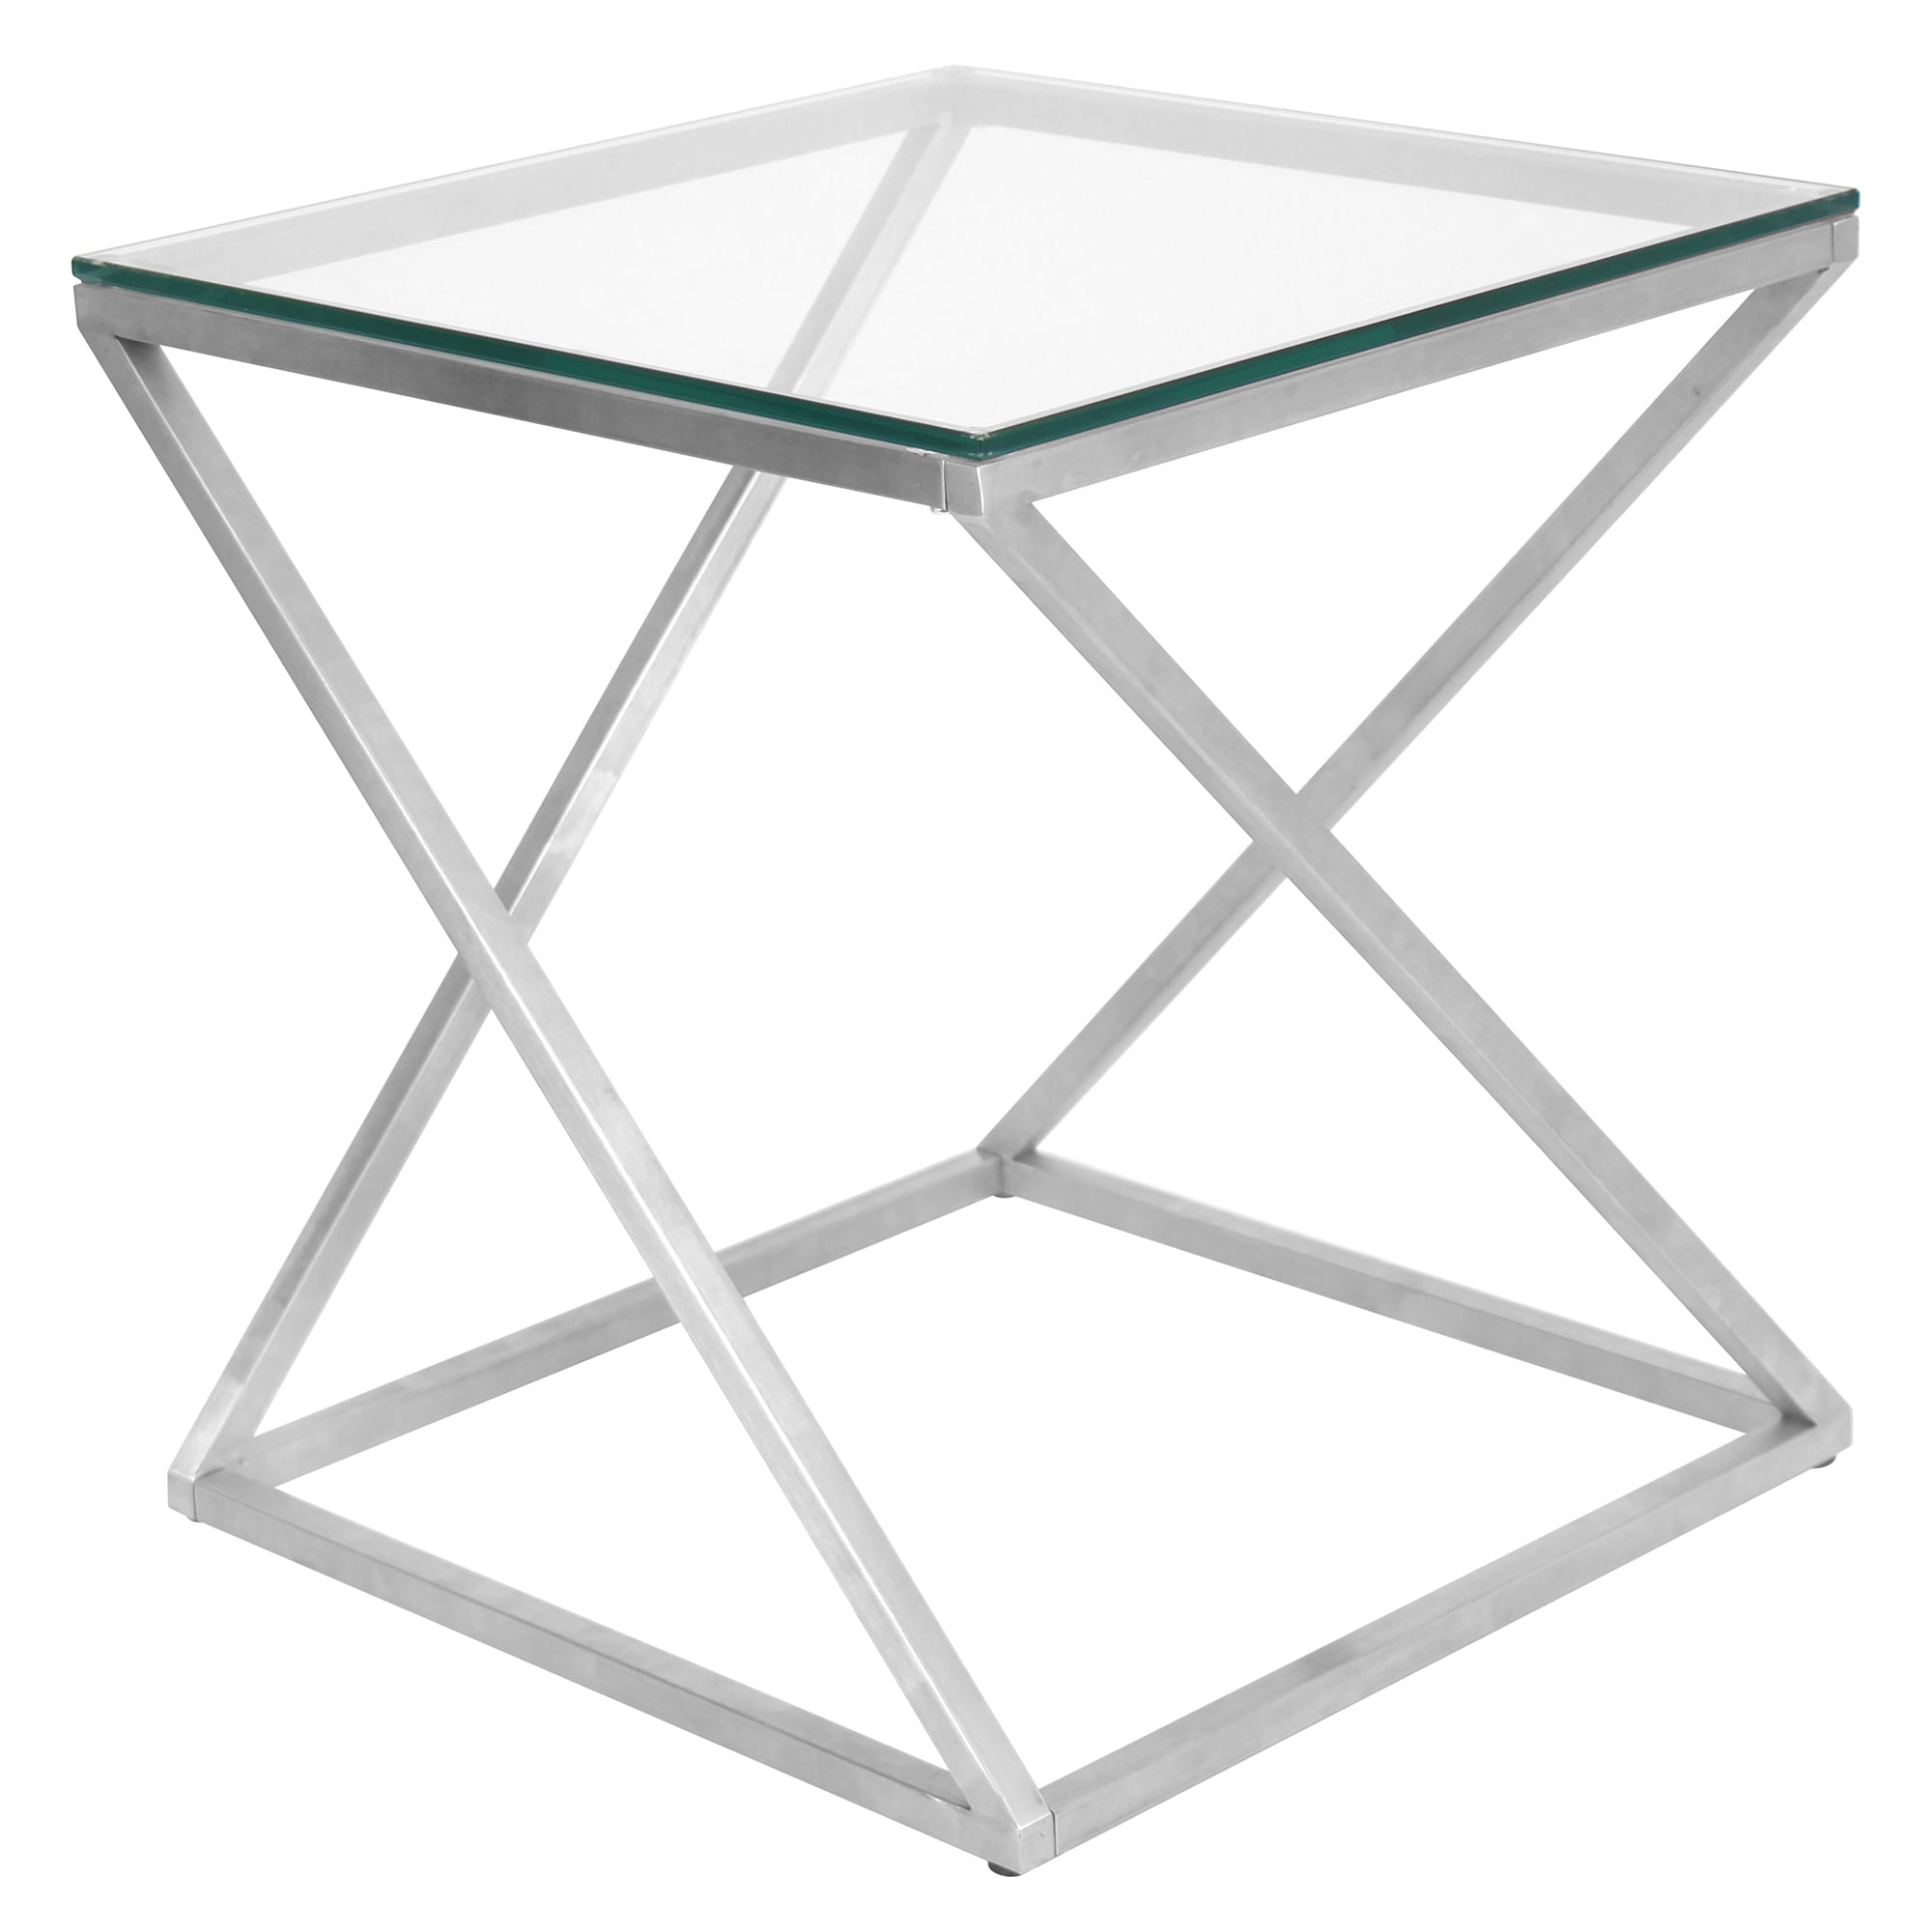 4Z Contemporary End Table in Stainless Steel with Clear Glass by Lumisource by LumiSource